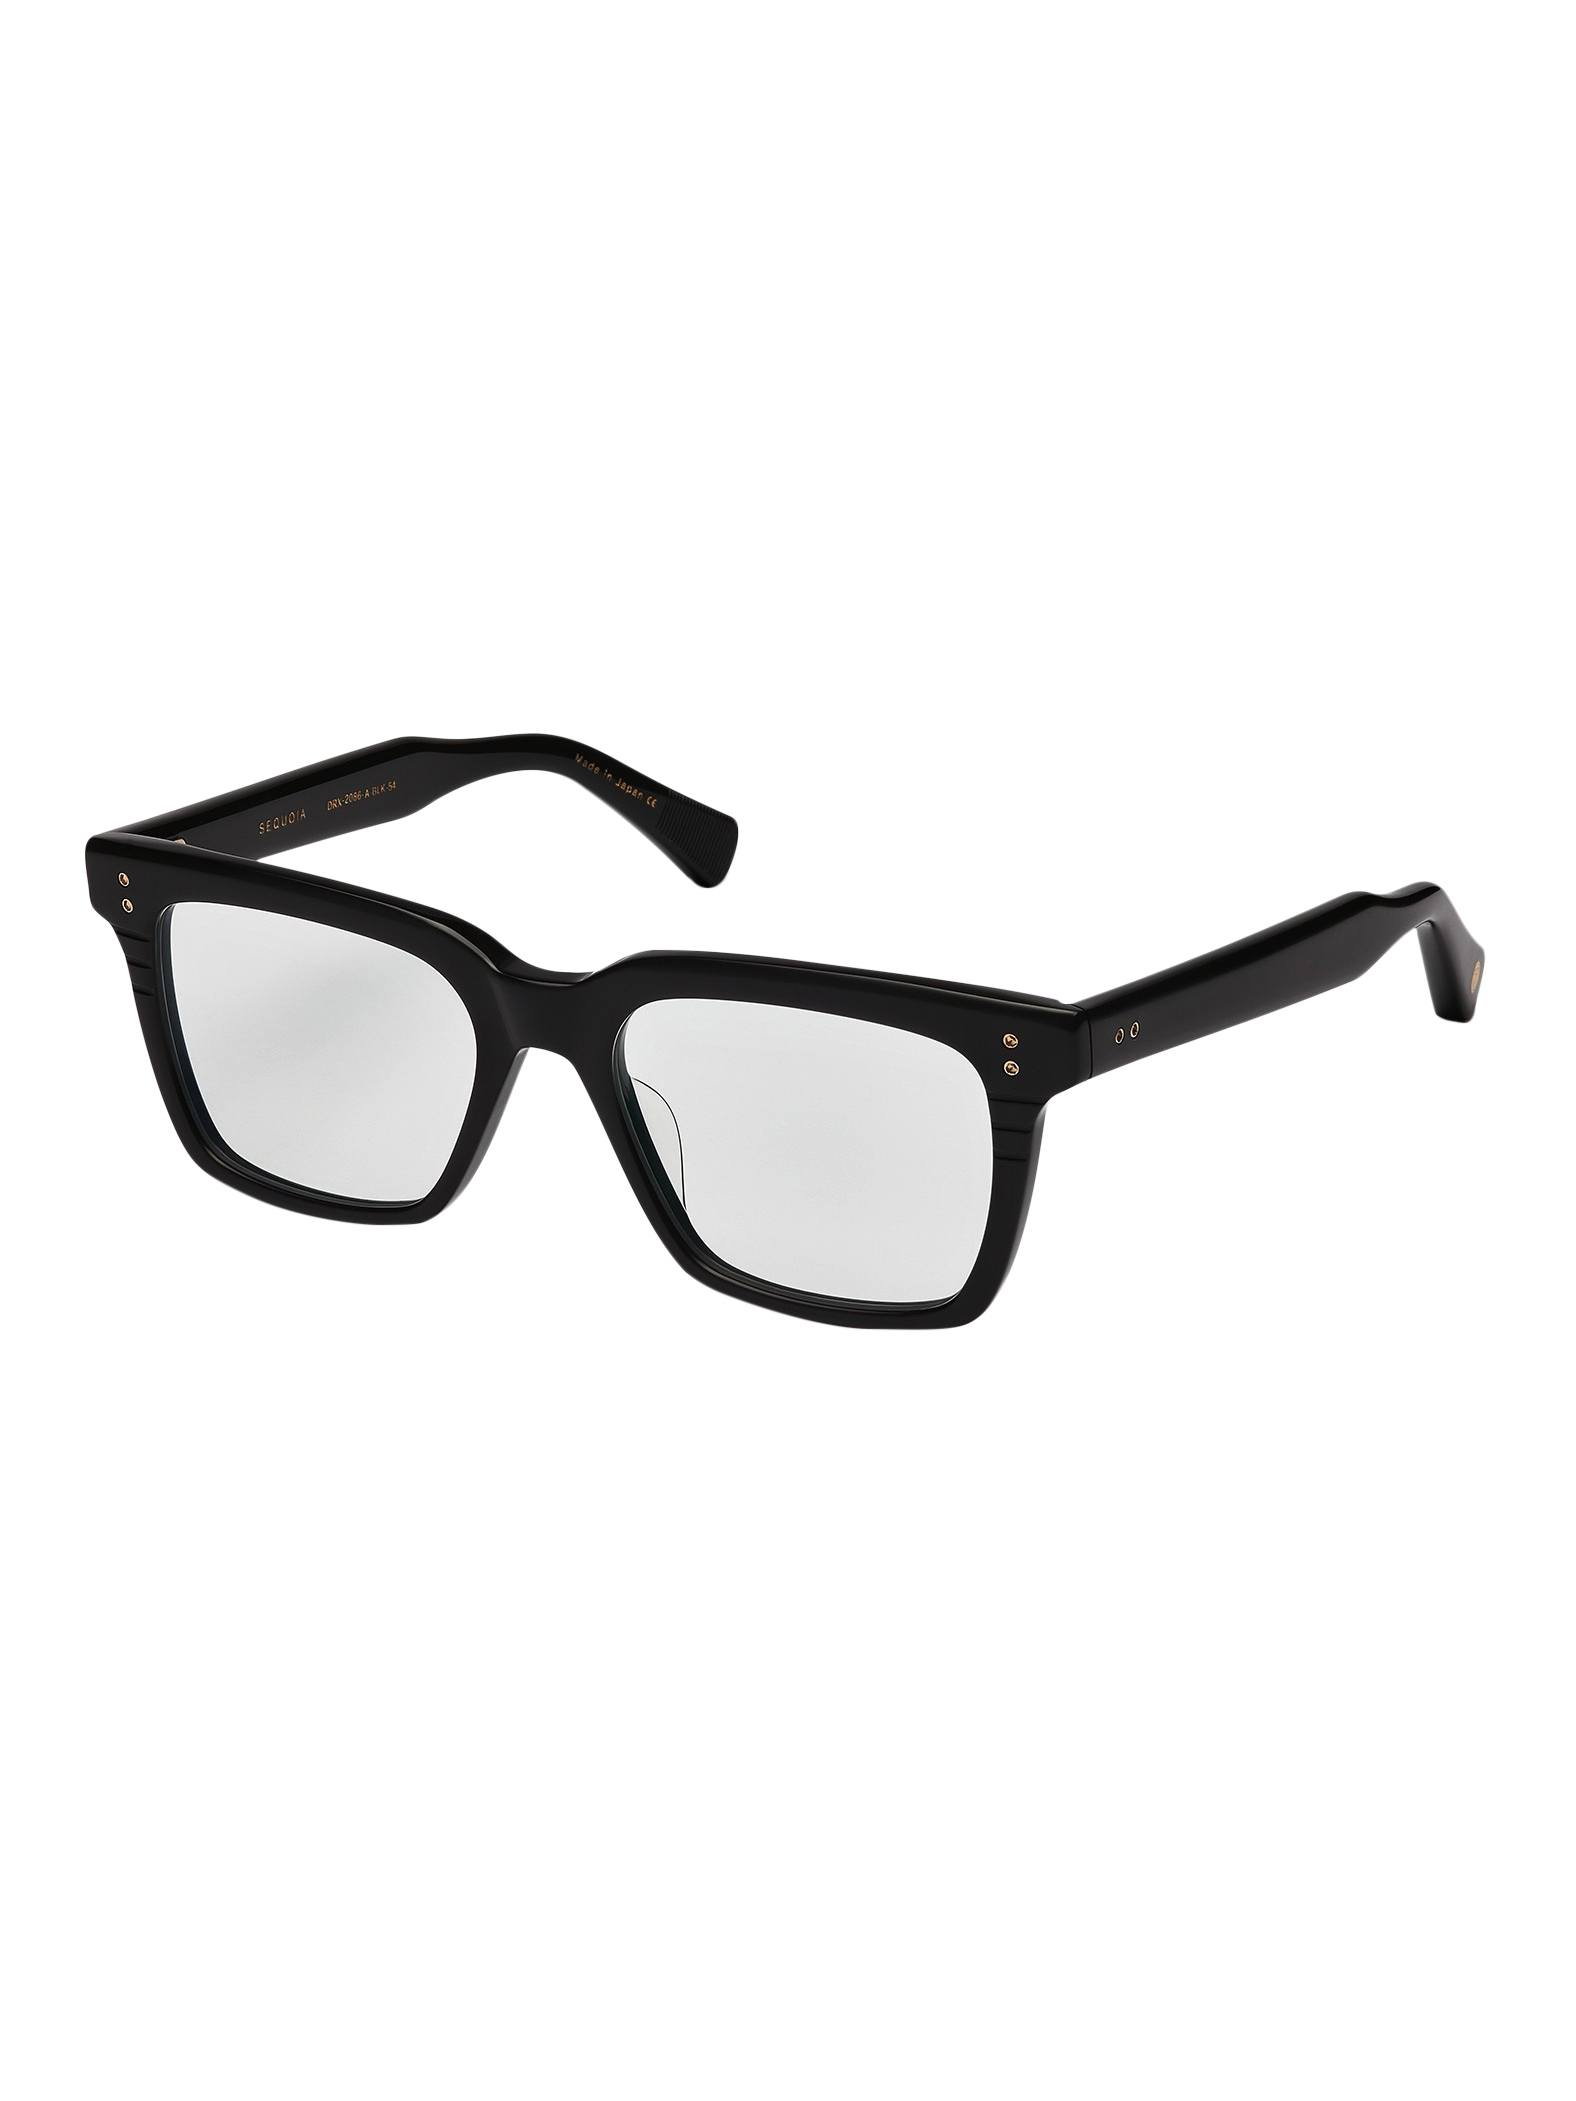 44681d38811 Optical Frame - Dita Sequoia DRX-2086A In Black Glasses